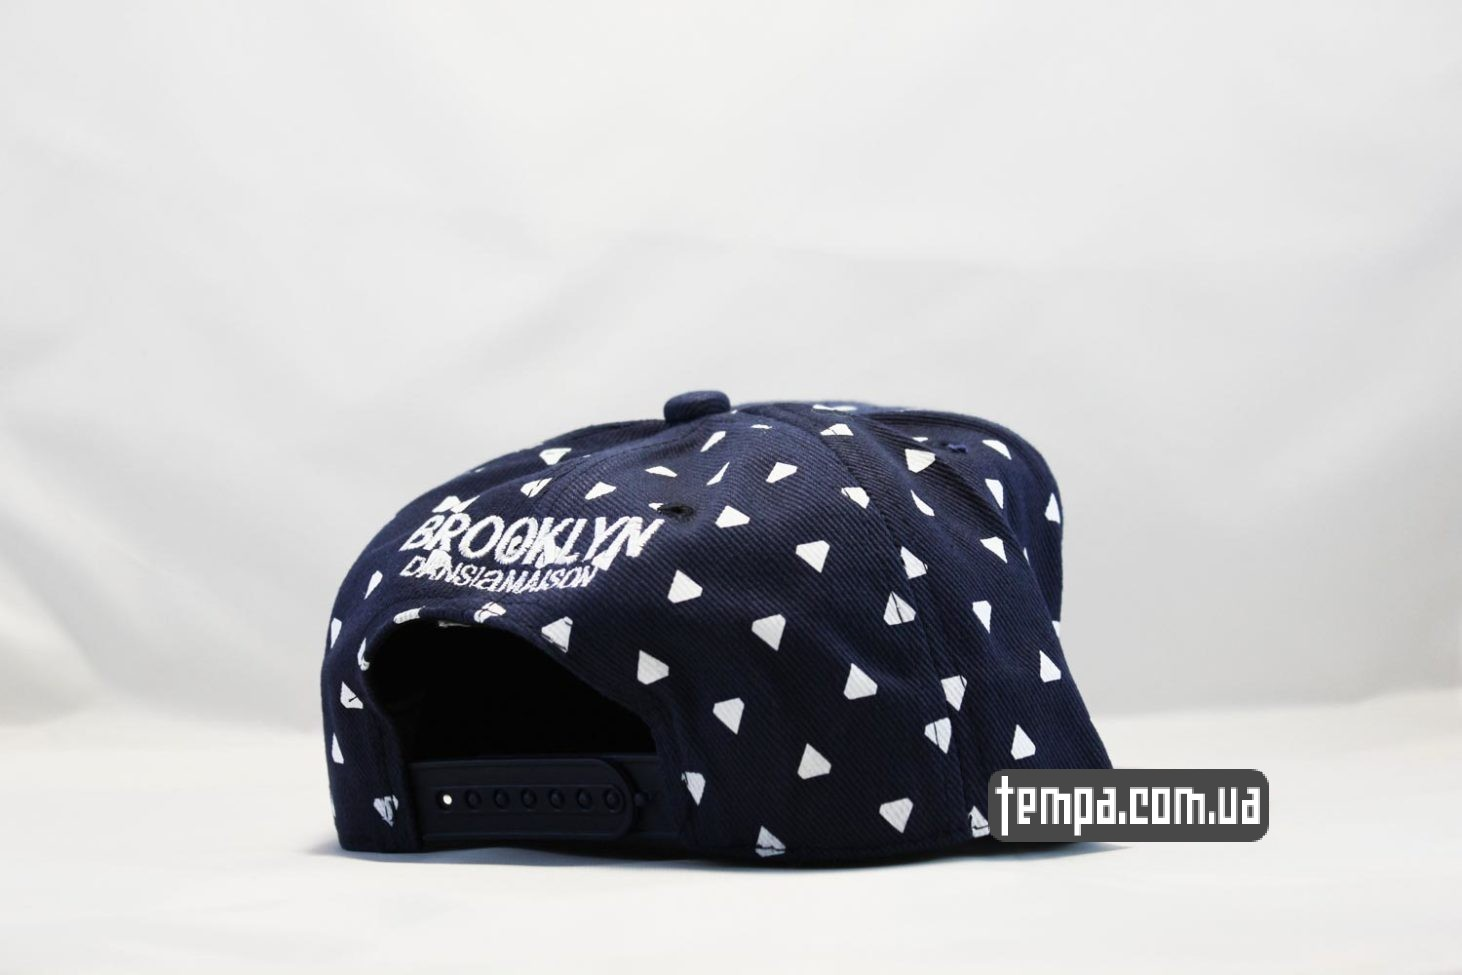 dans la maison In The House кепка snapback cayler and sons brooklyn eye глаза красные